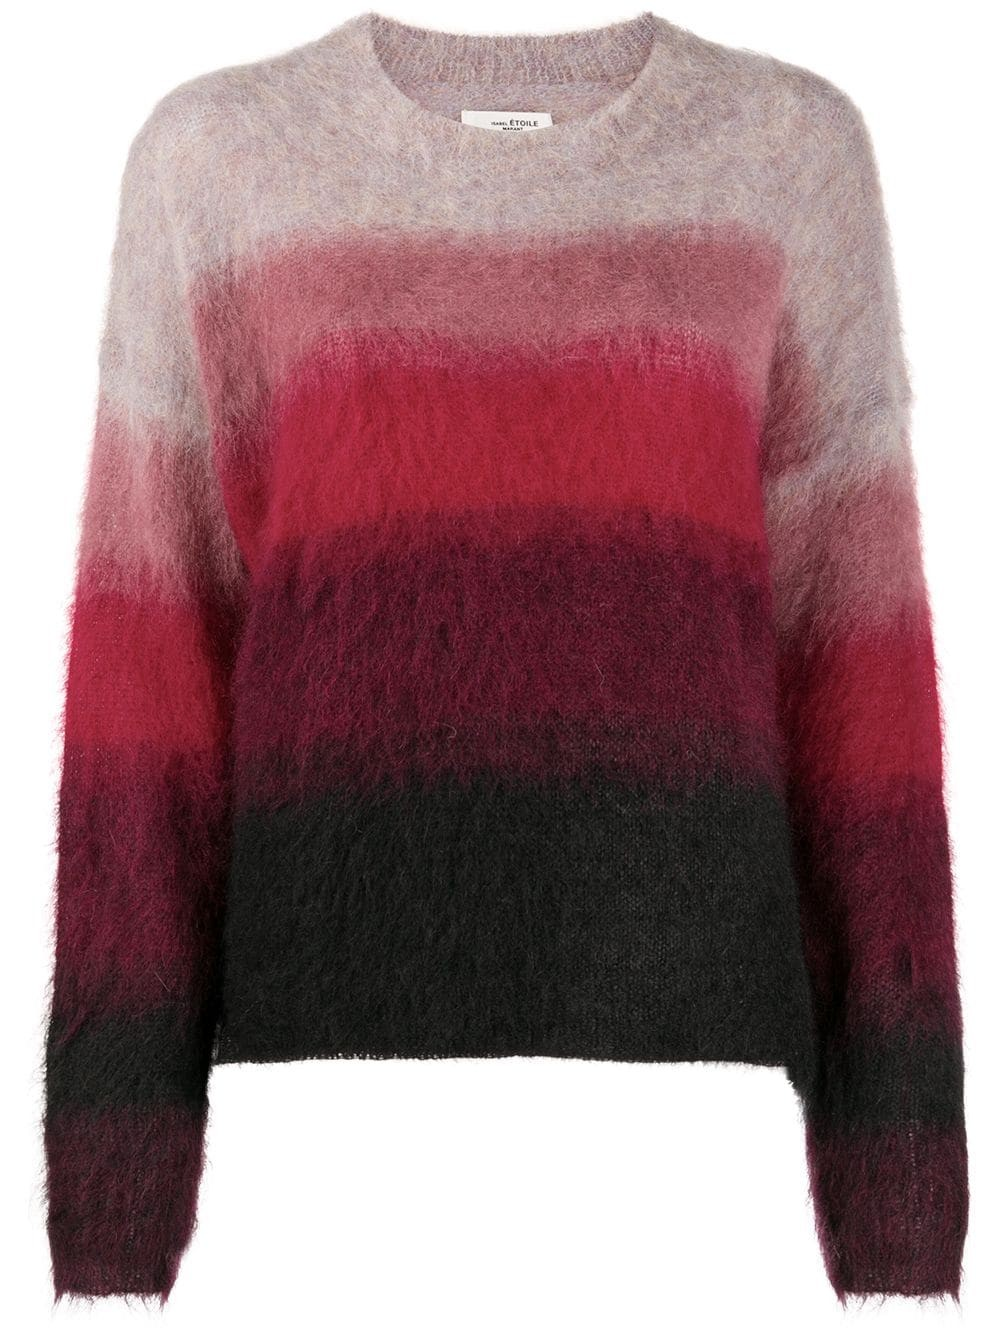 DRUSSELL PULLOVER